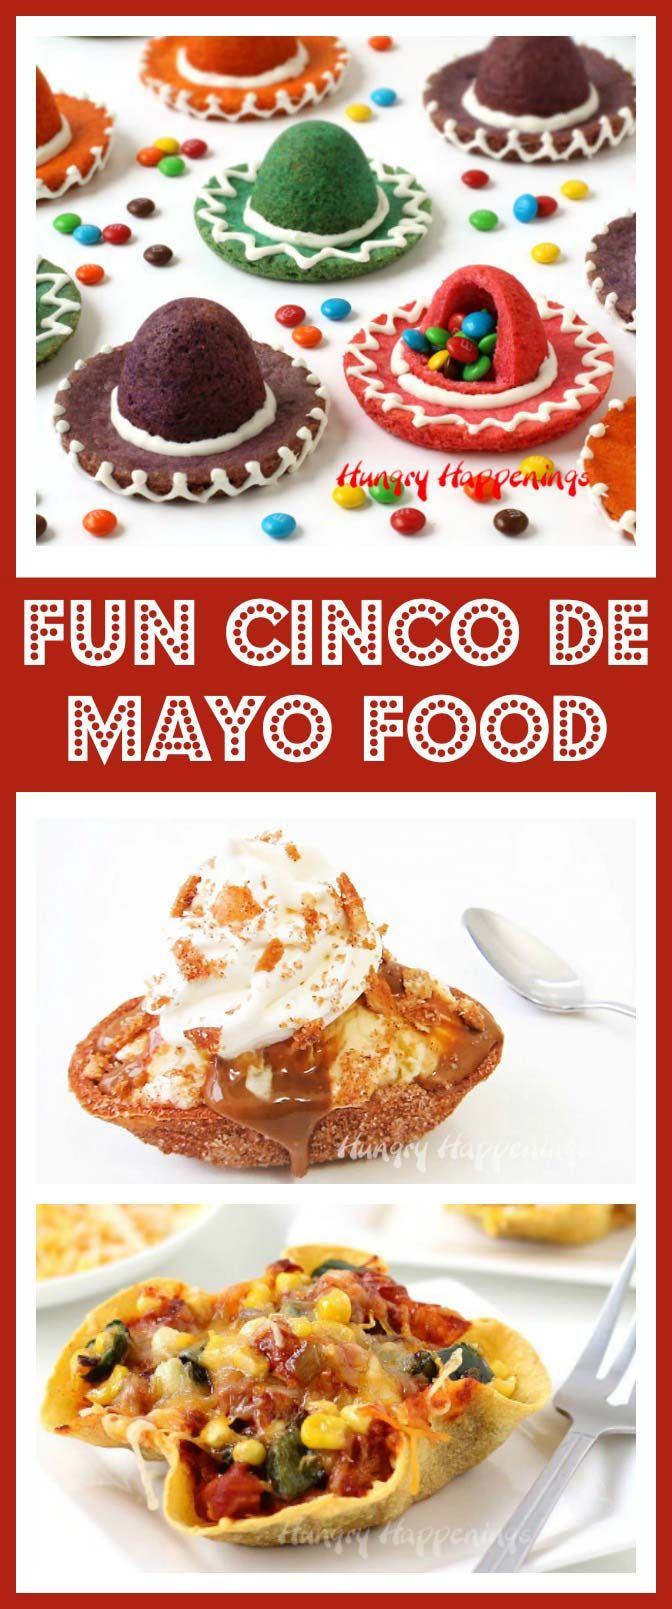 Celebrate with some festive Cinco de Mayo recipes like Sombrero Piñata Cookies, Churro Sundaes, or Enchilada Bowls. They are perfect for any Mexican fiesta.